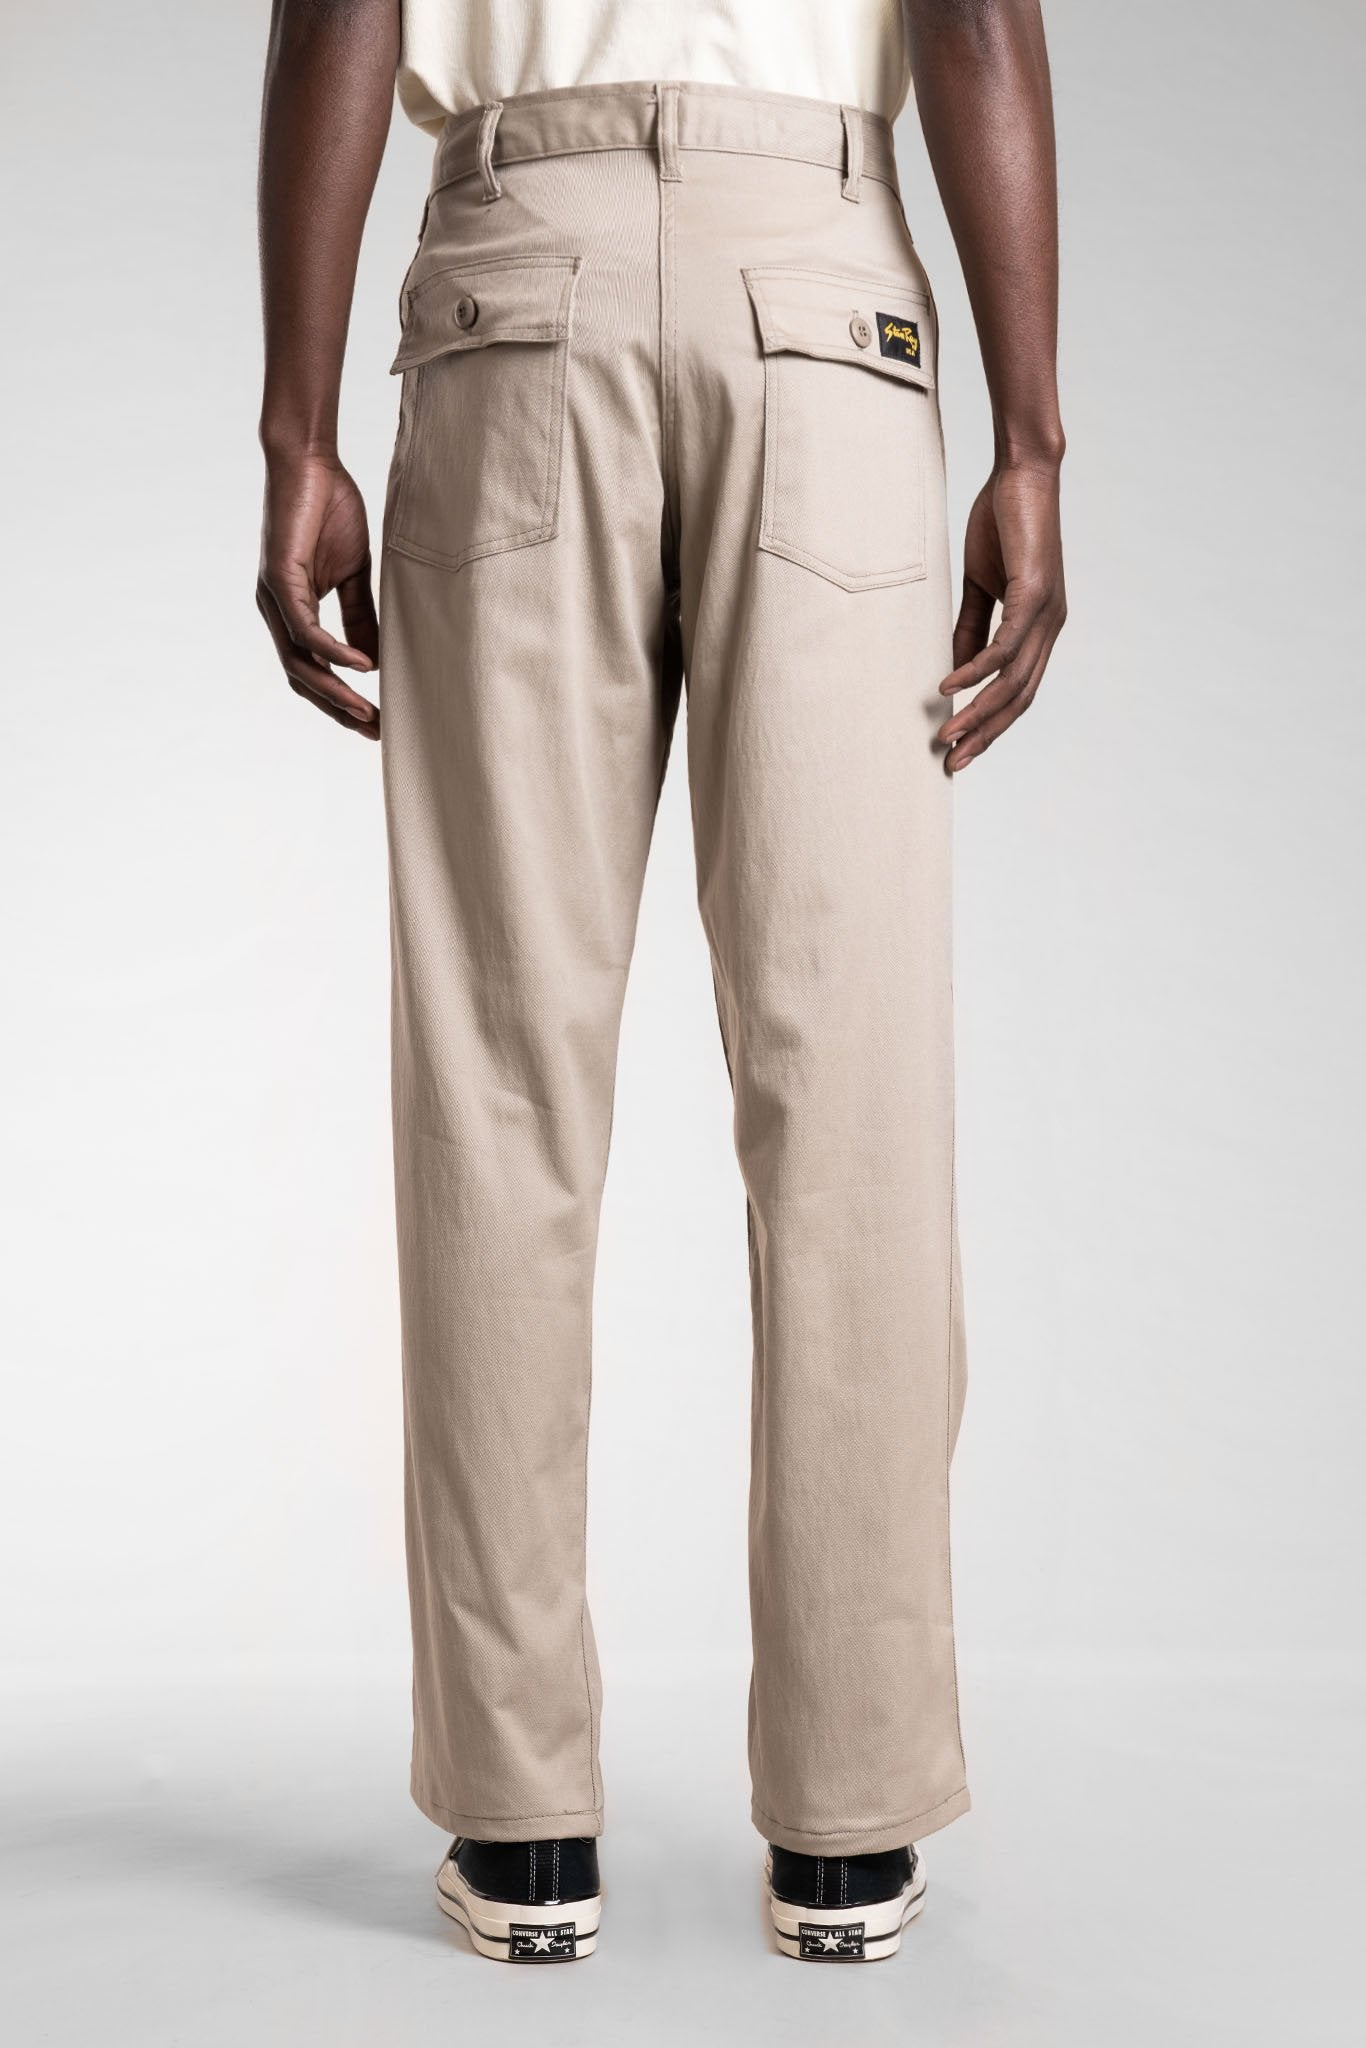 stan ray - loose fit fatigue pant 2